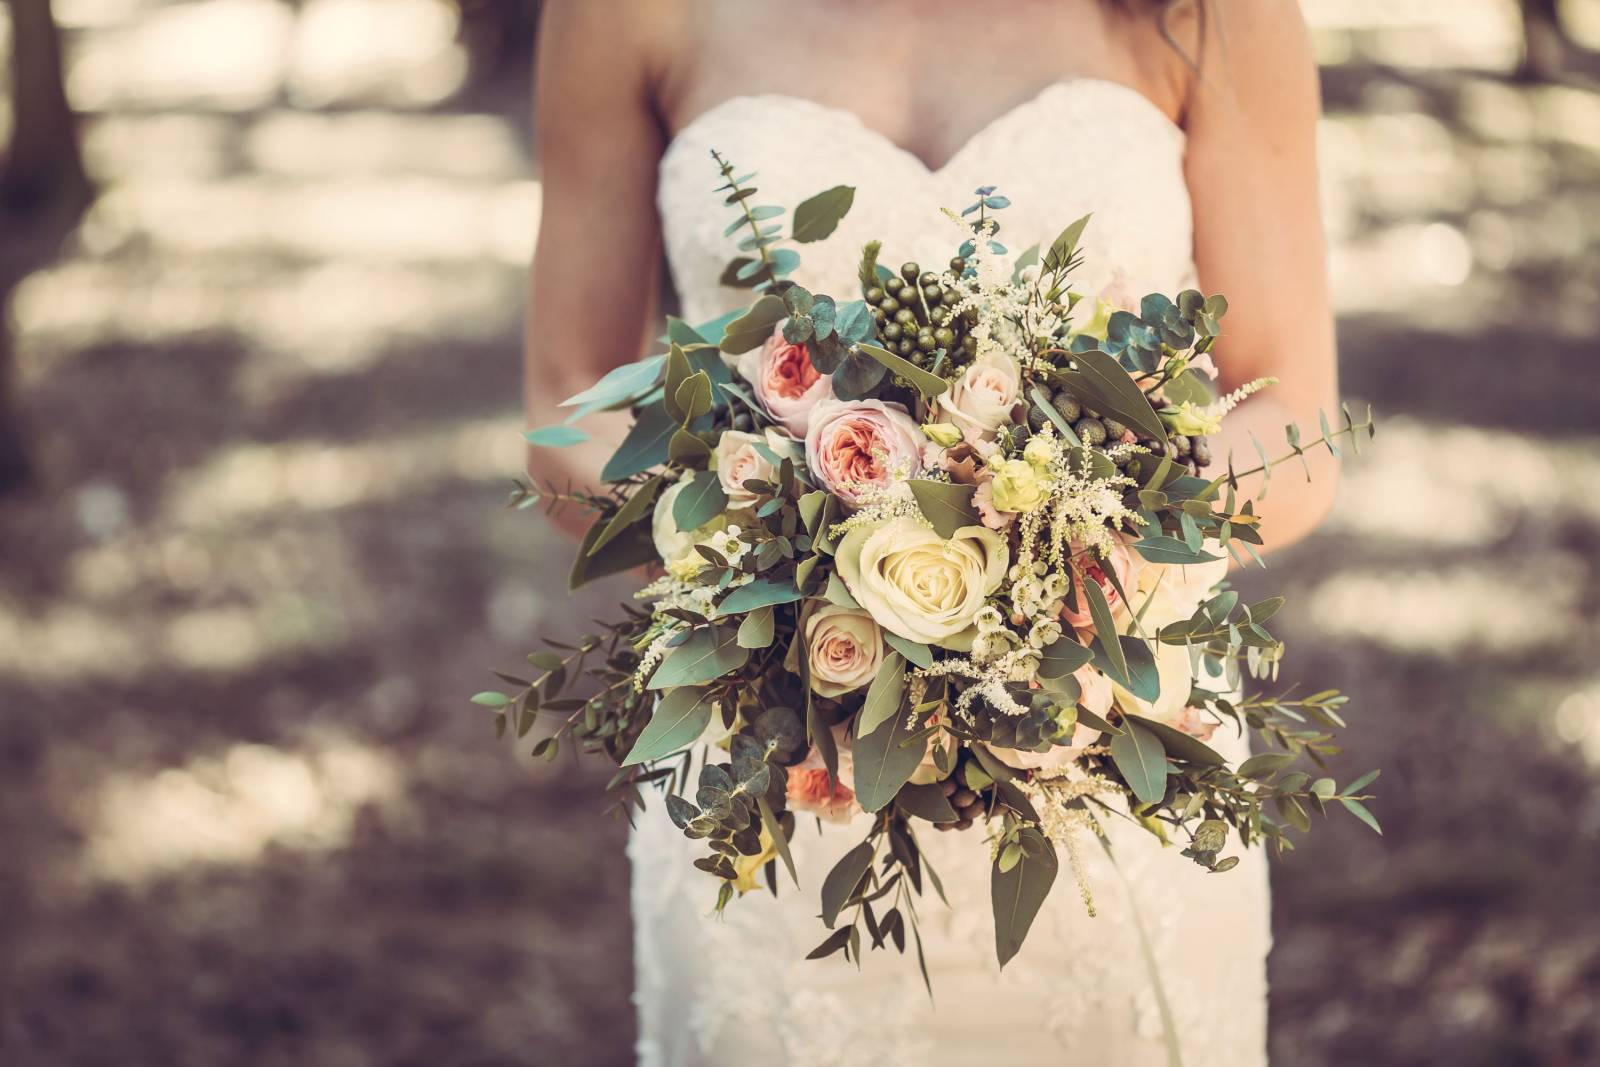 Carpe Diem Bloemen & Decoratie - House of Weddings  - 28